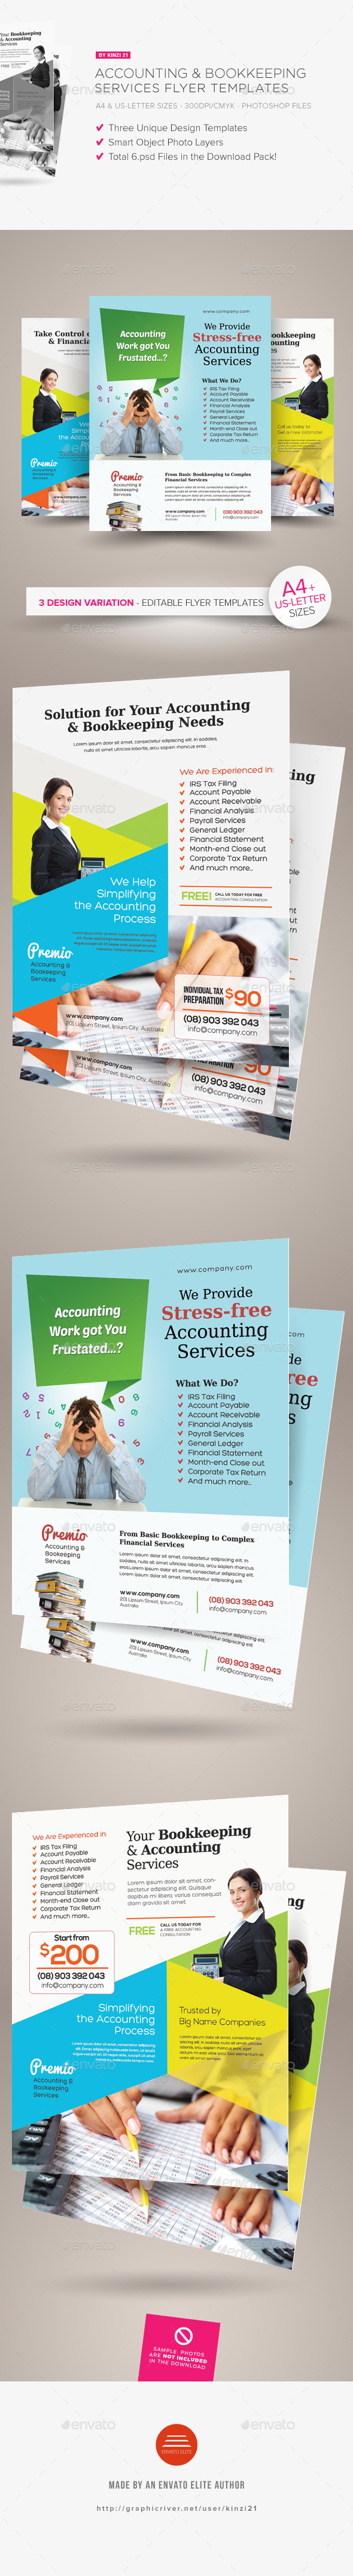 Accounting and Bookkeeping Services Flyers - Corporate Flyers